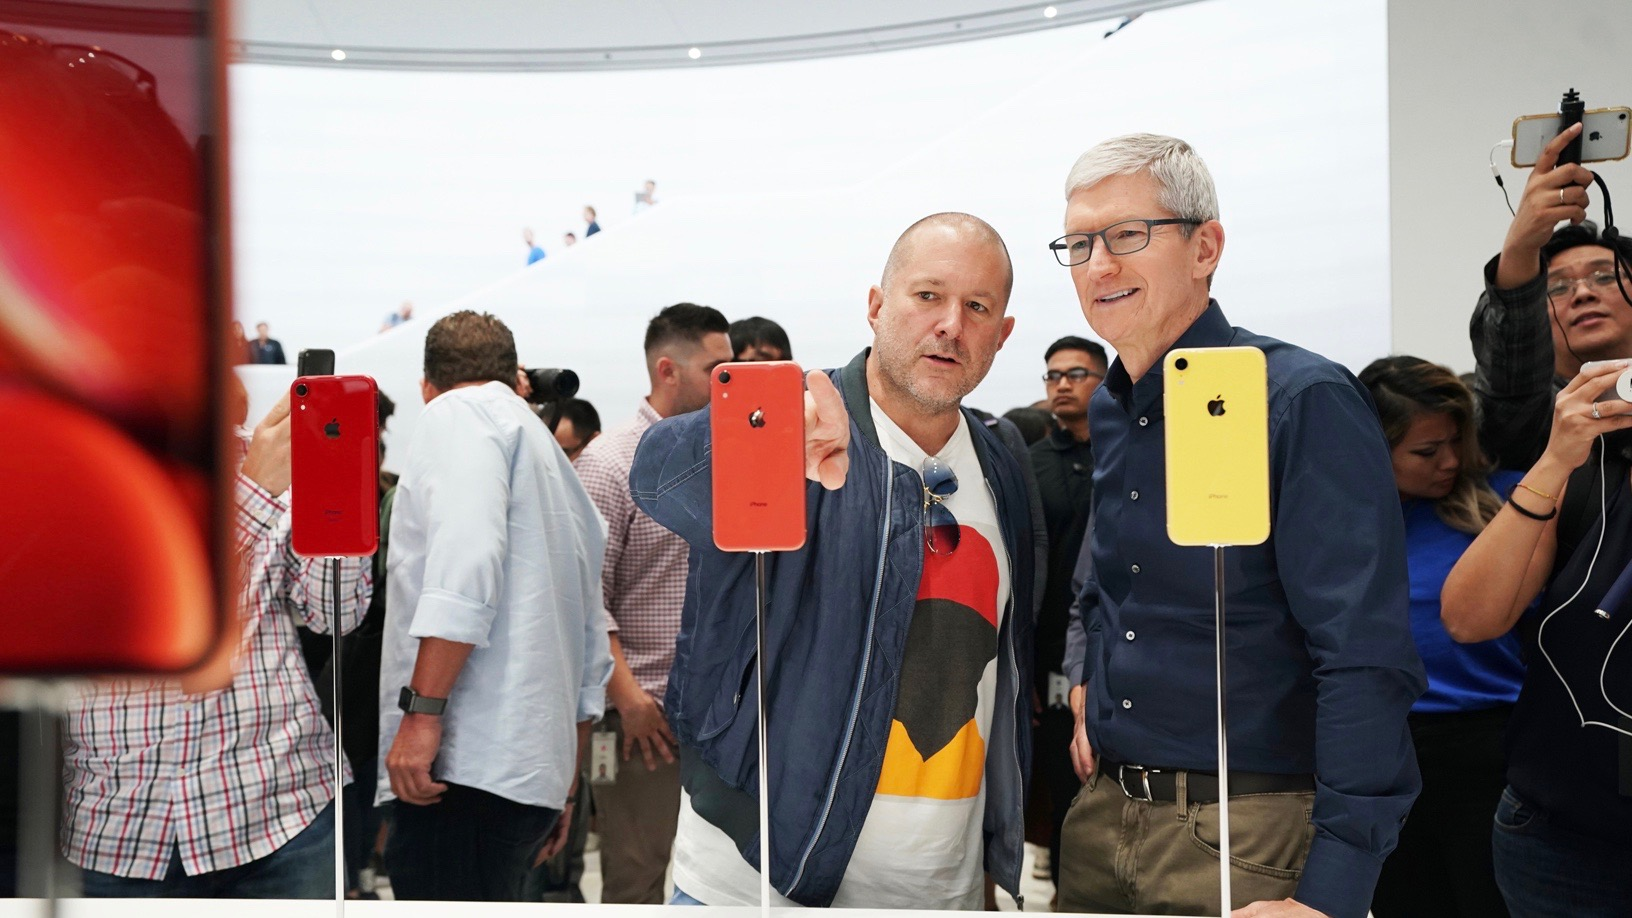 Tim Cook addresses iPhone pricing, dual-SIM support, and more in new interviews